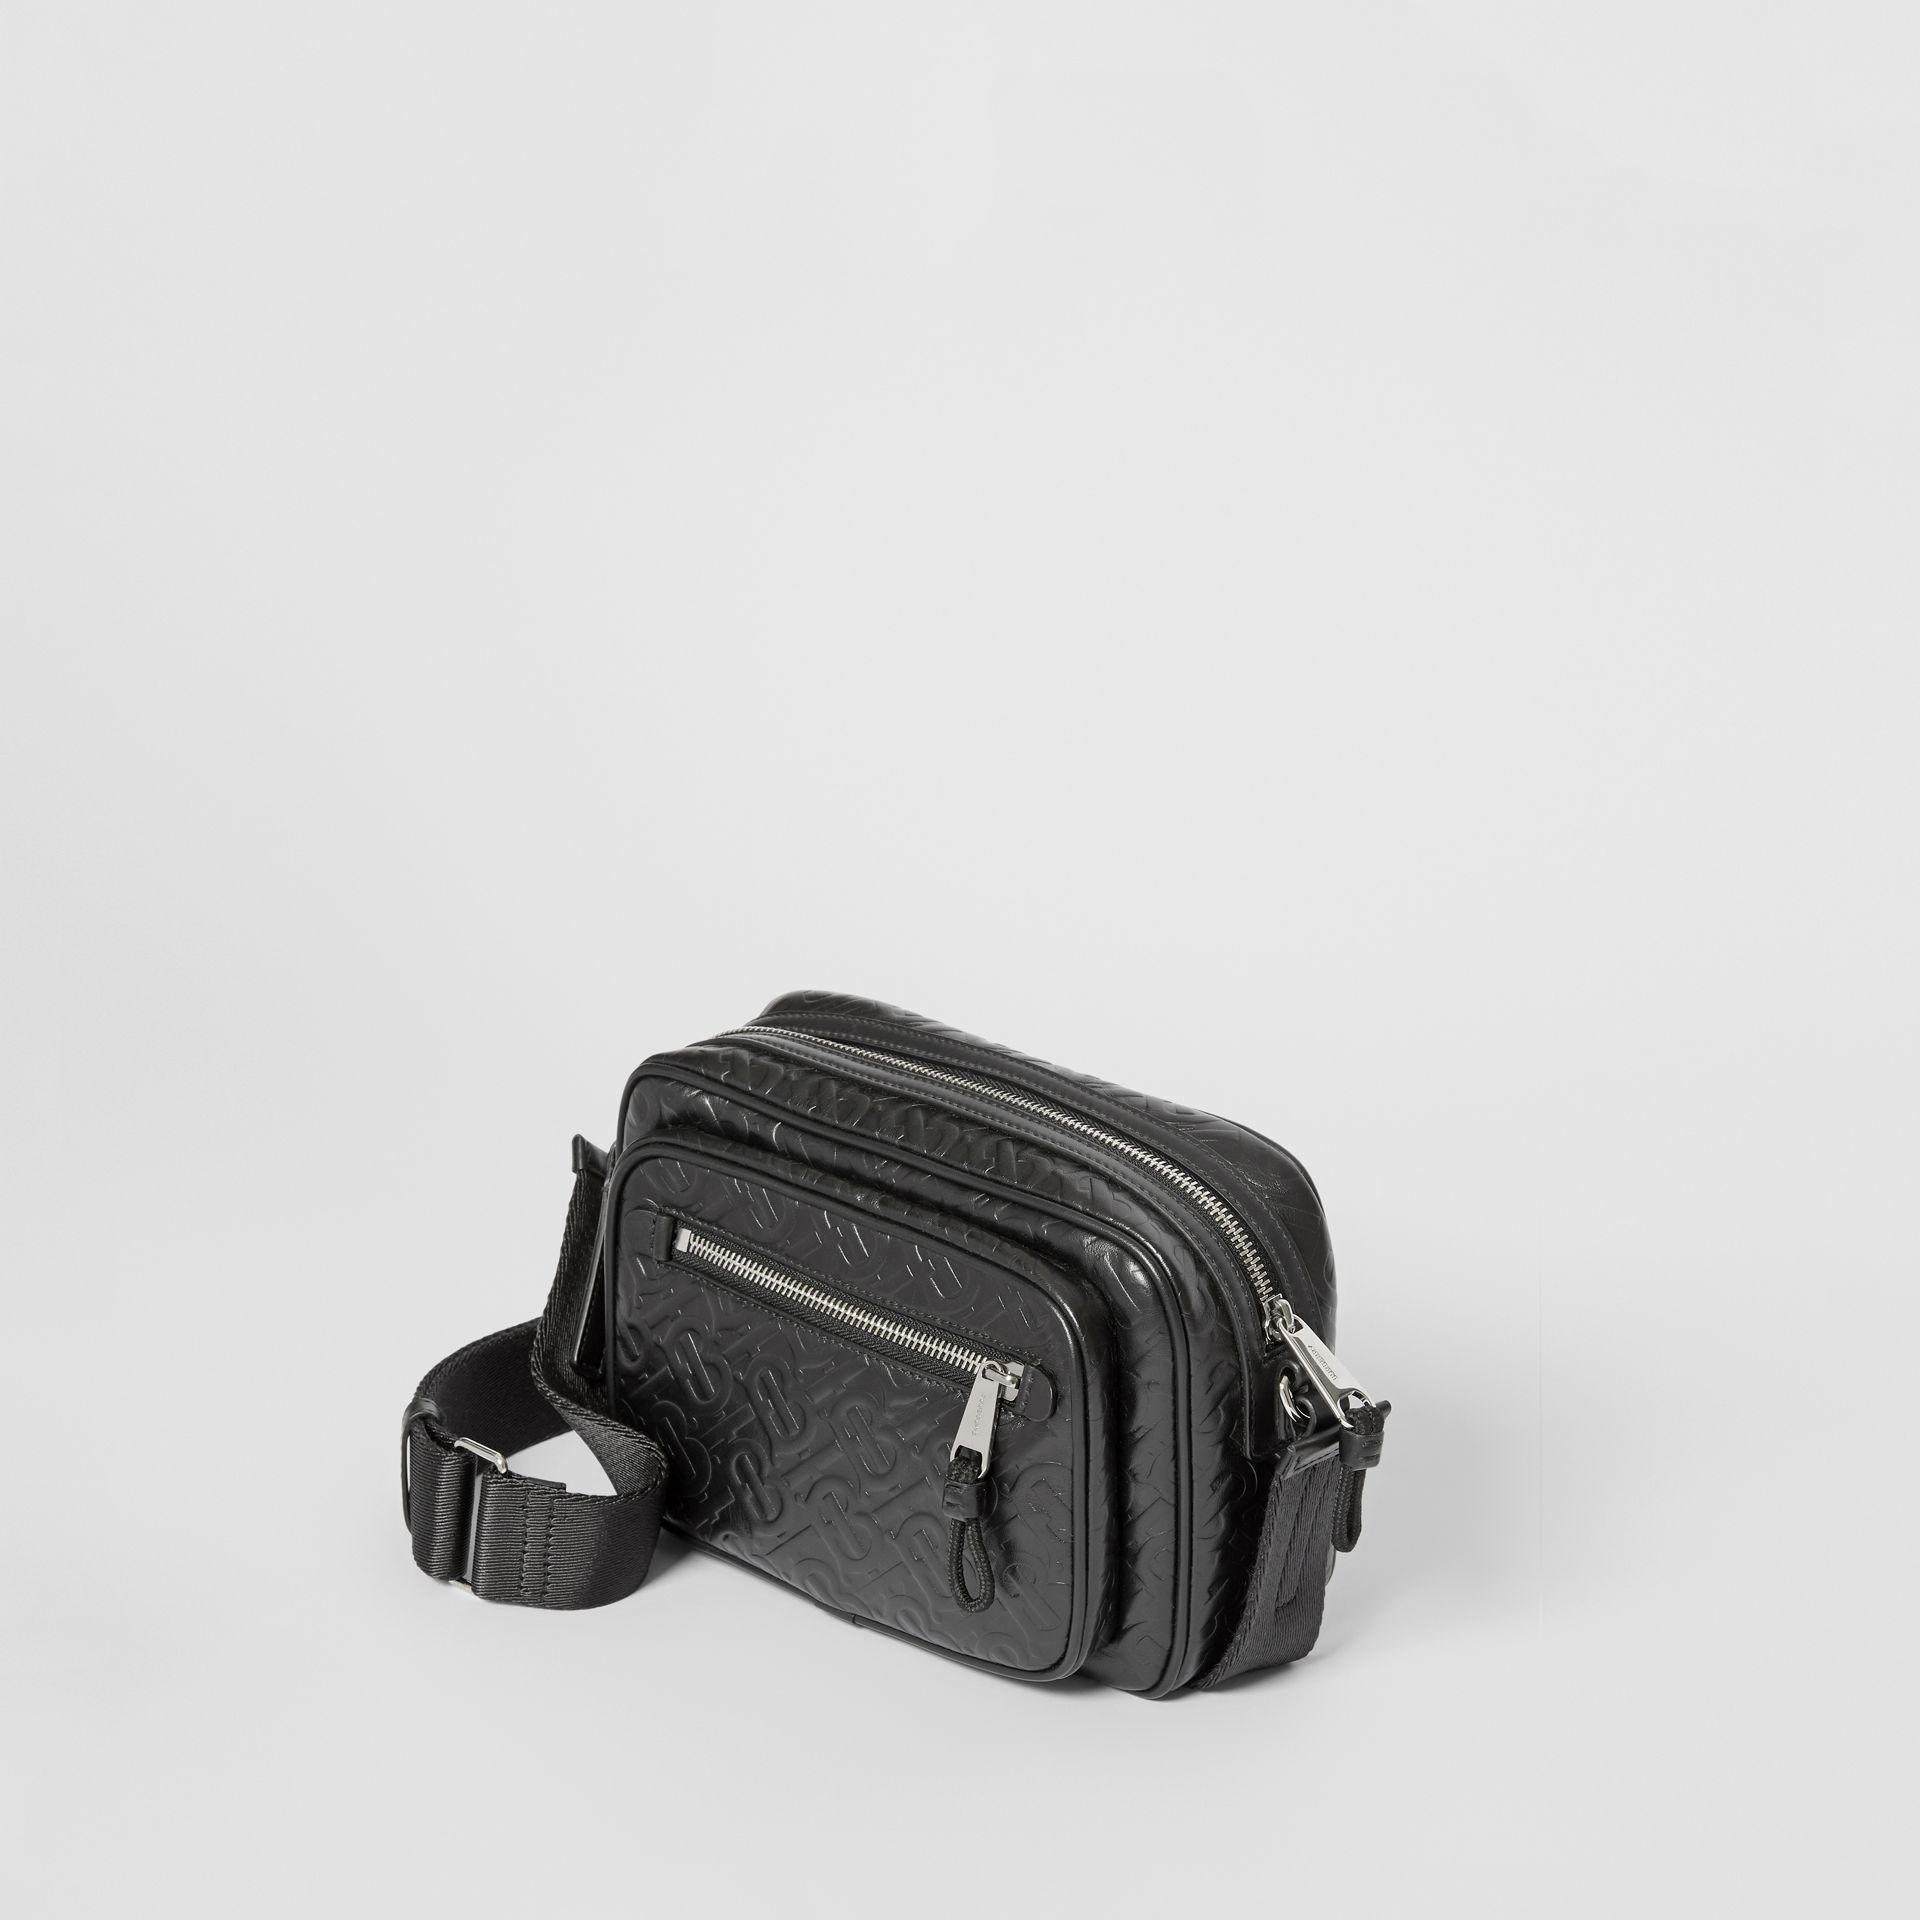 Monogram Leather Crossbody Bag in Black - Men | Burberry United States - gallery image 3